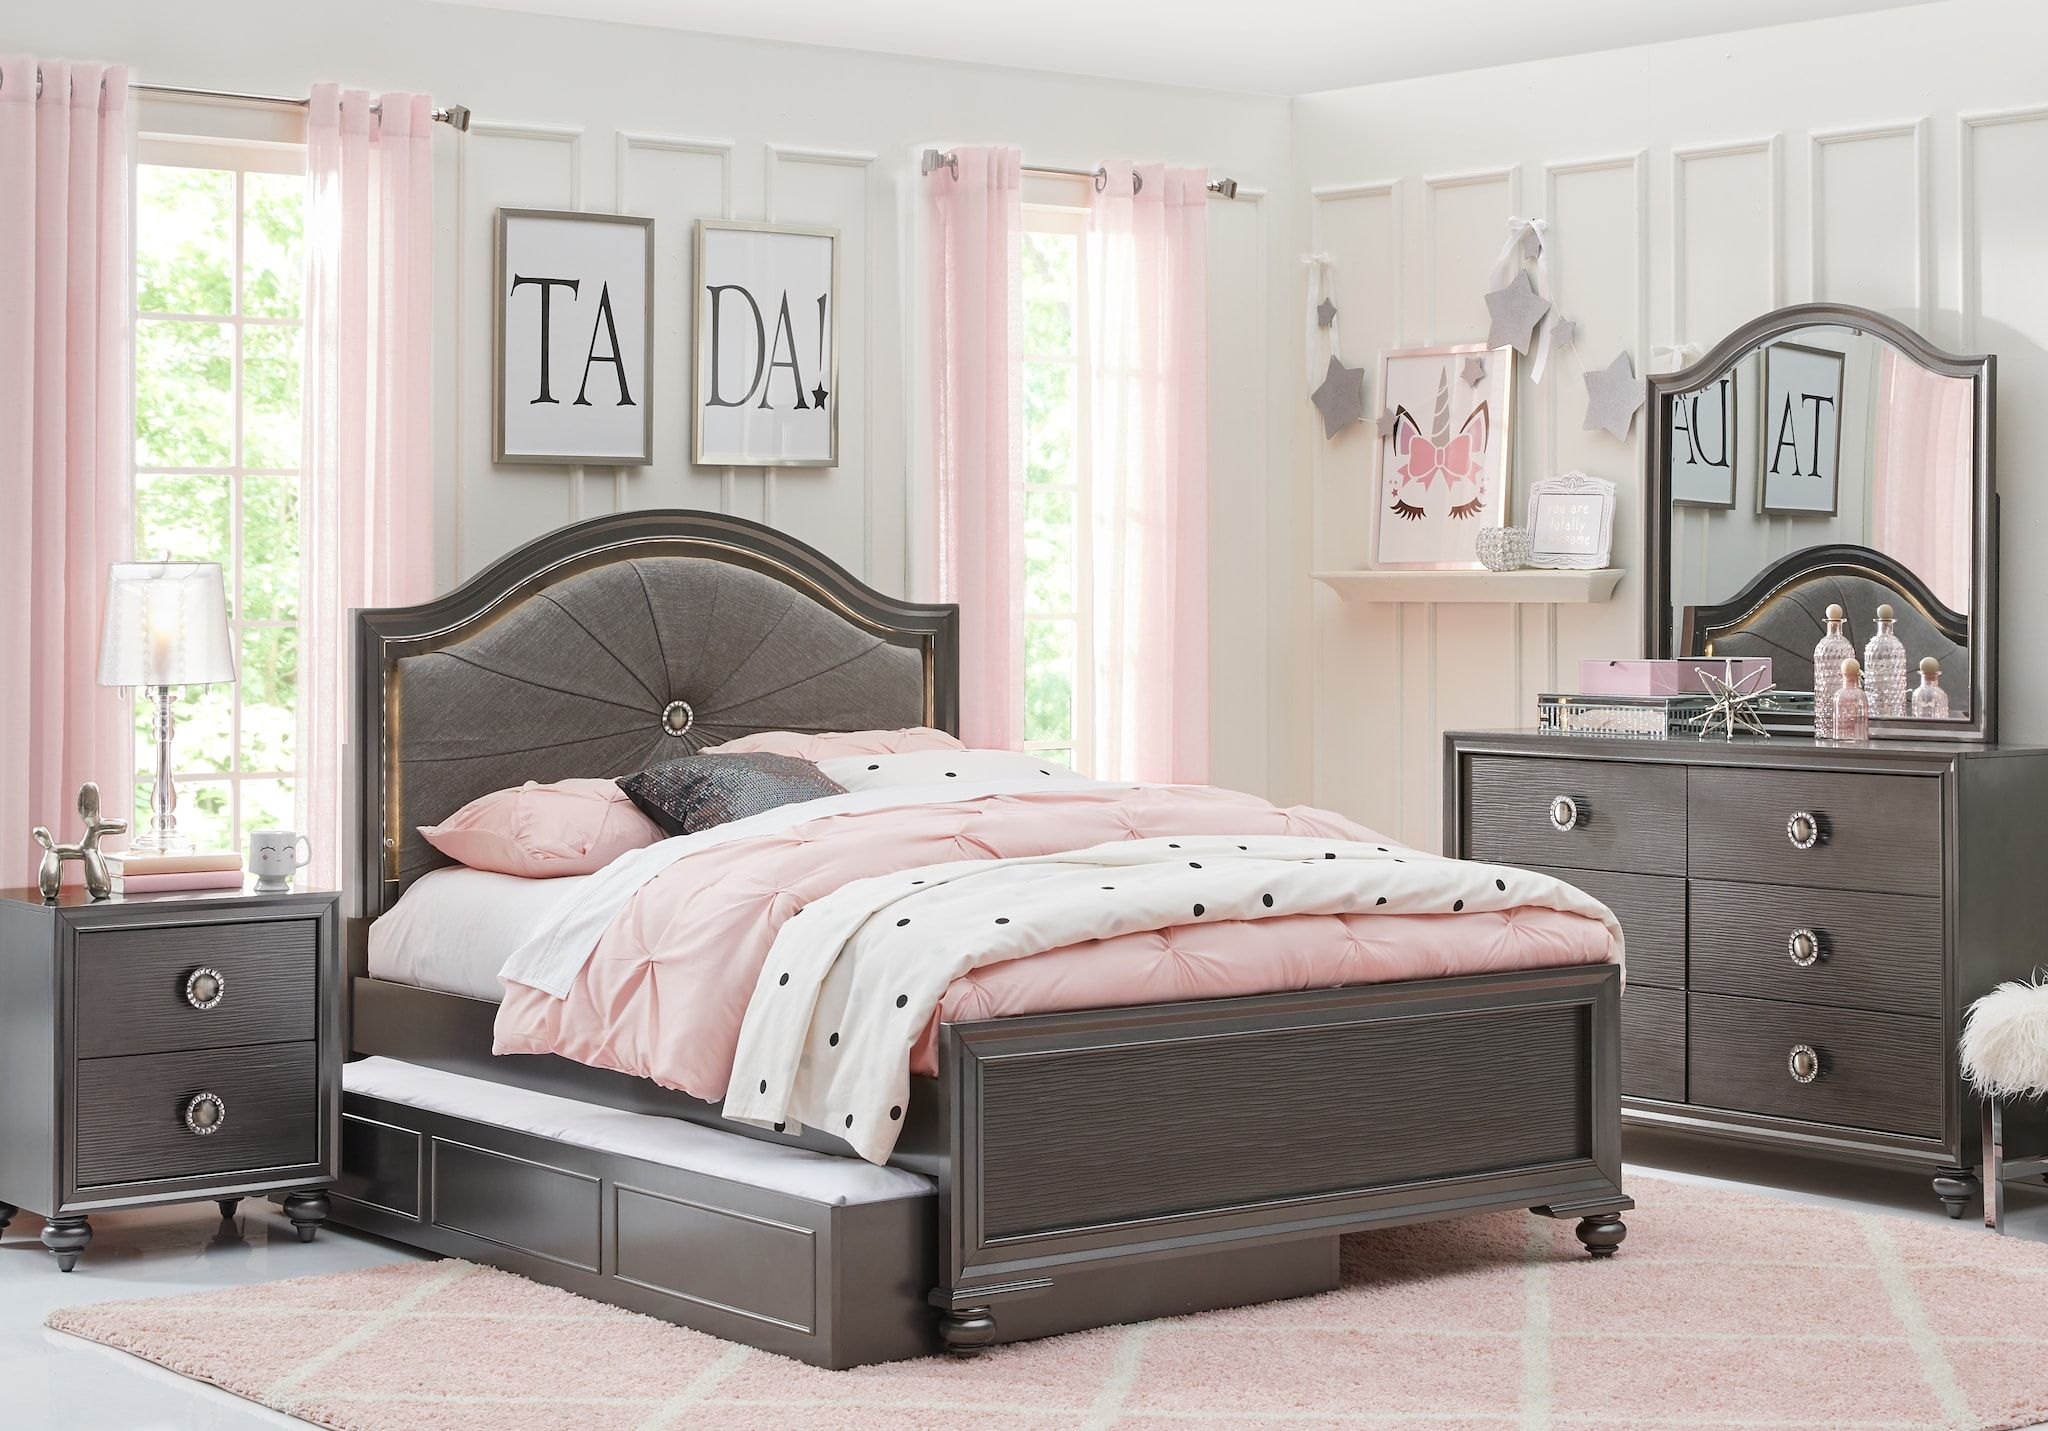 Girls Full Size Bedroom Sets with Double Beds | Jazzy new ...